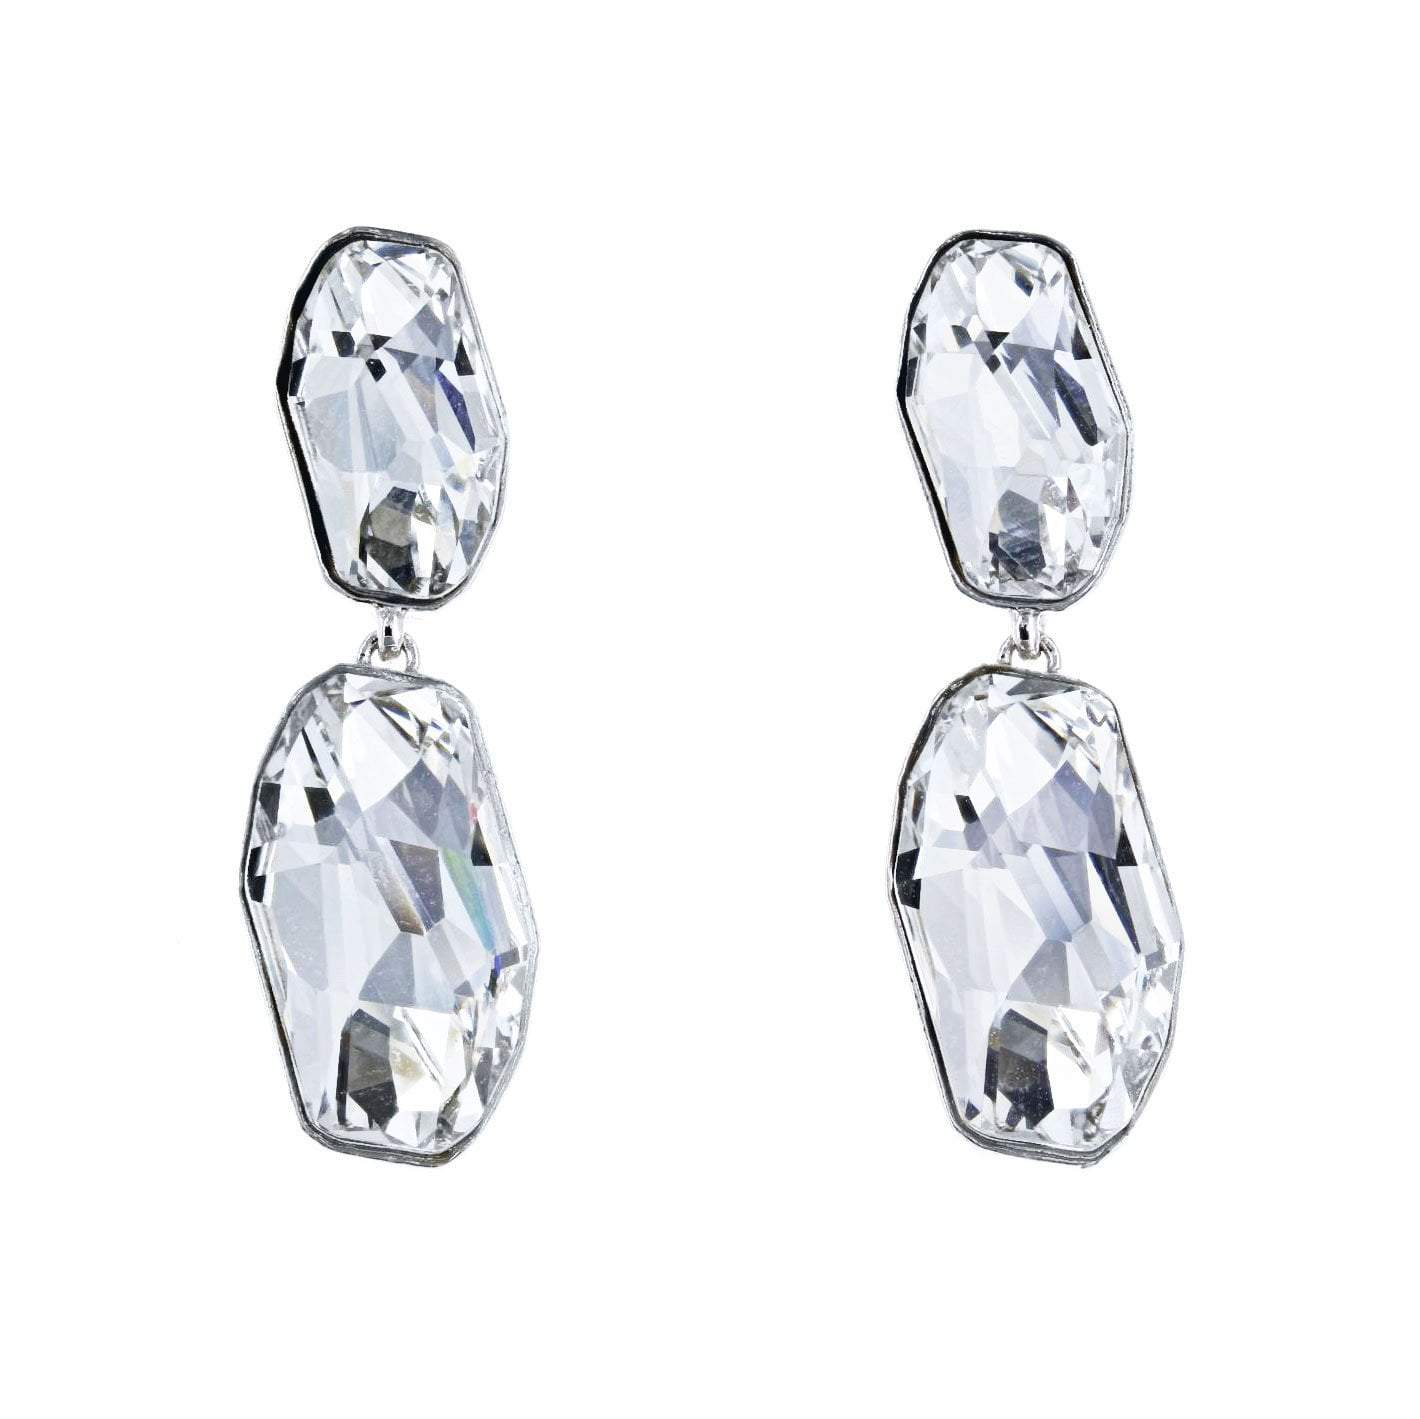 Crystal Collection Earrings Color / Clear Modern Swarovski Crystal Earring in Sterling Silver